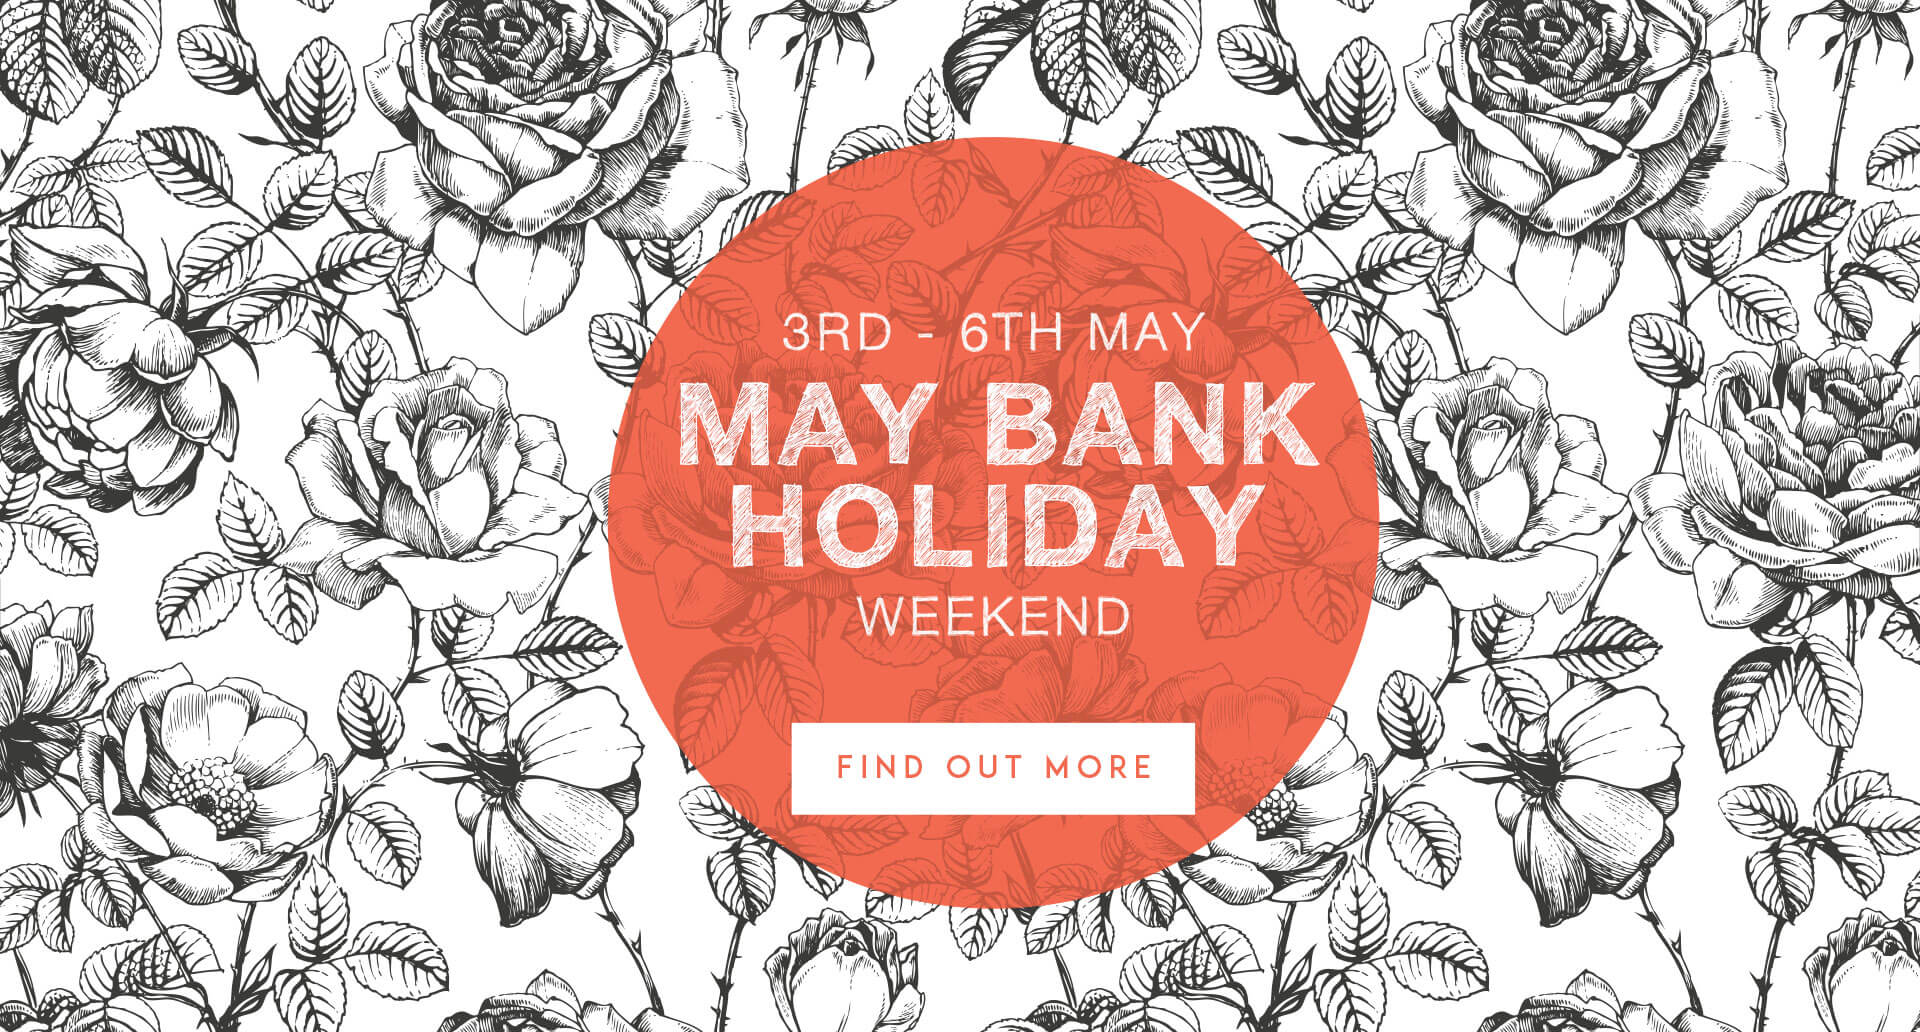 May Bank Holiday at The Market Tavern